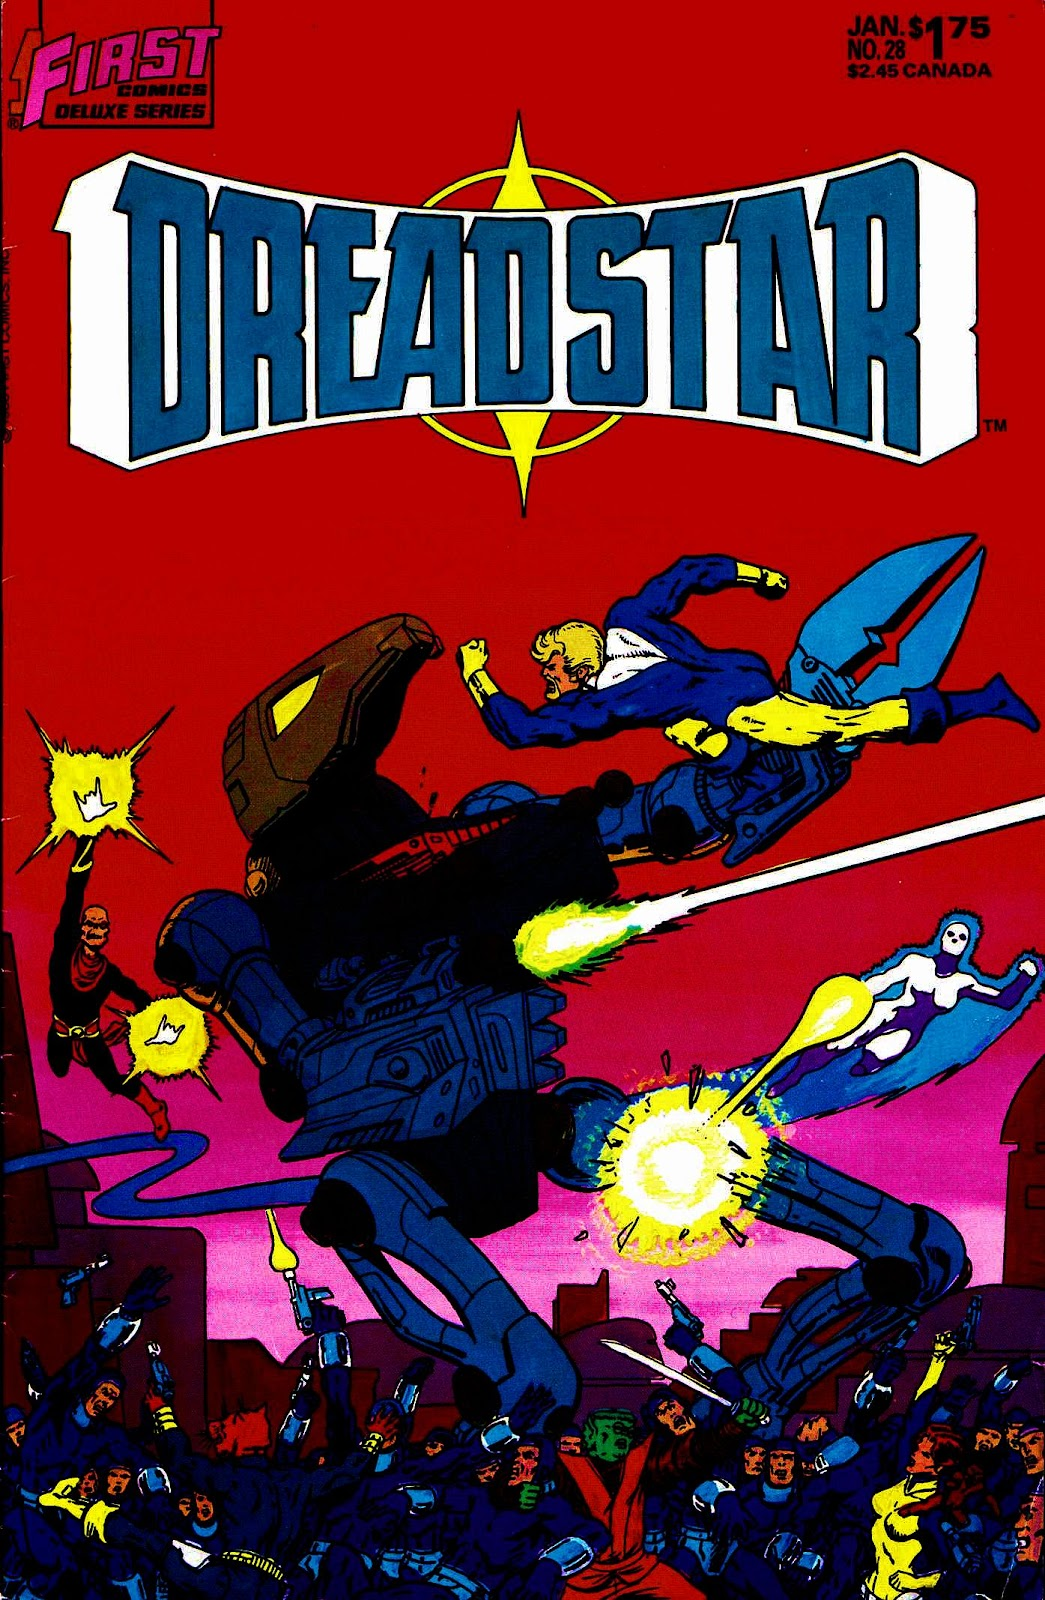 Dreadstar 28 Page 1